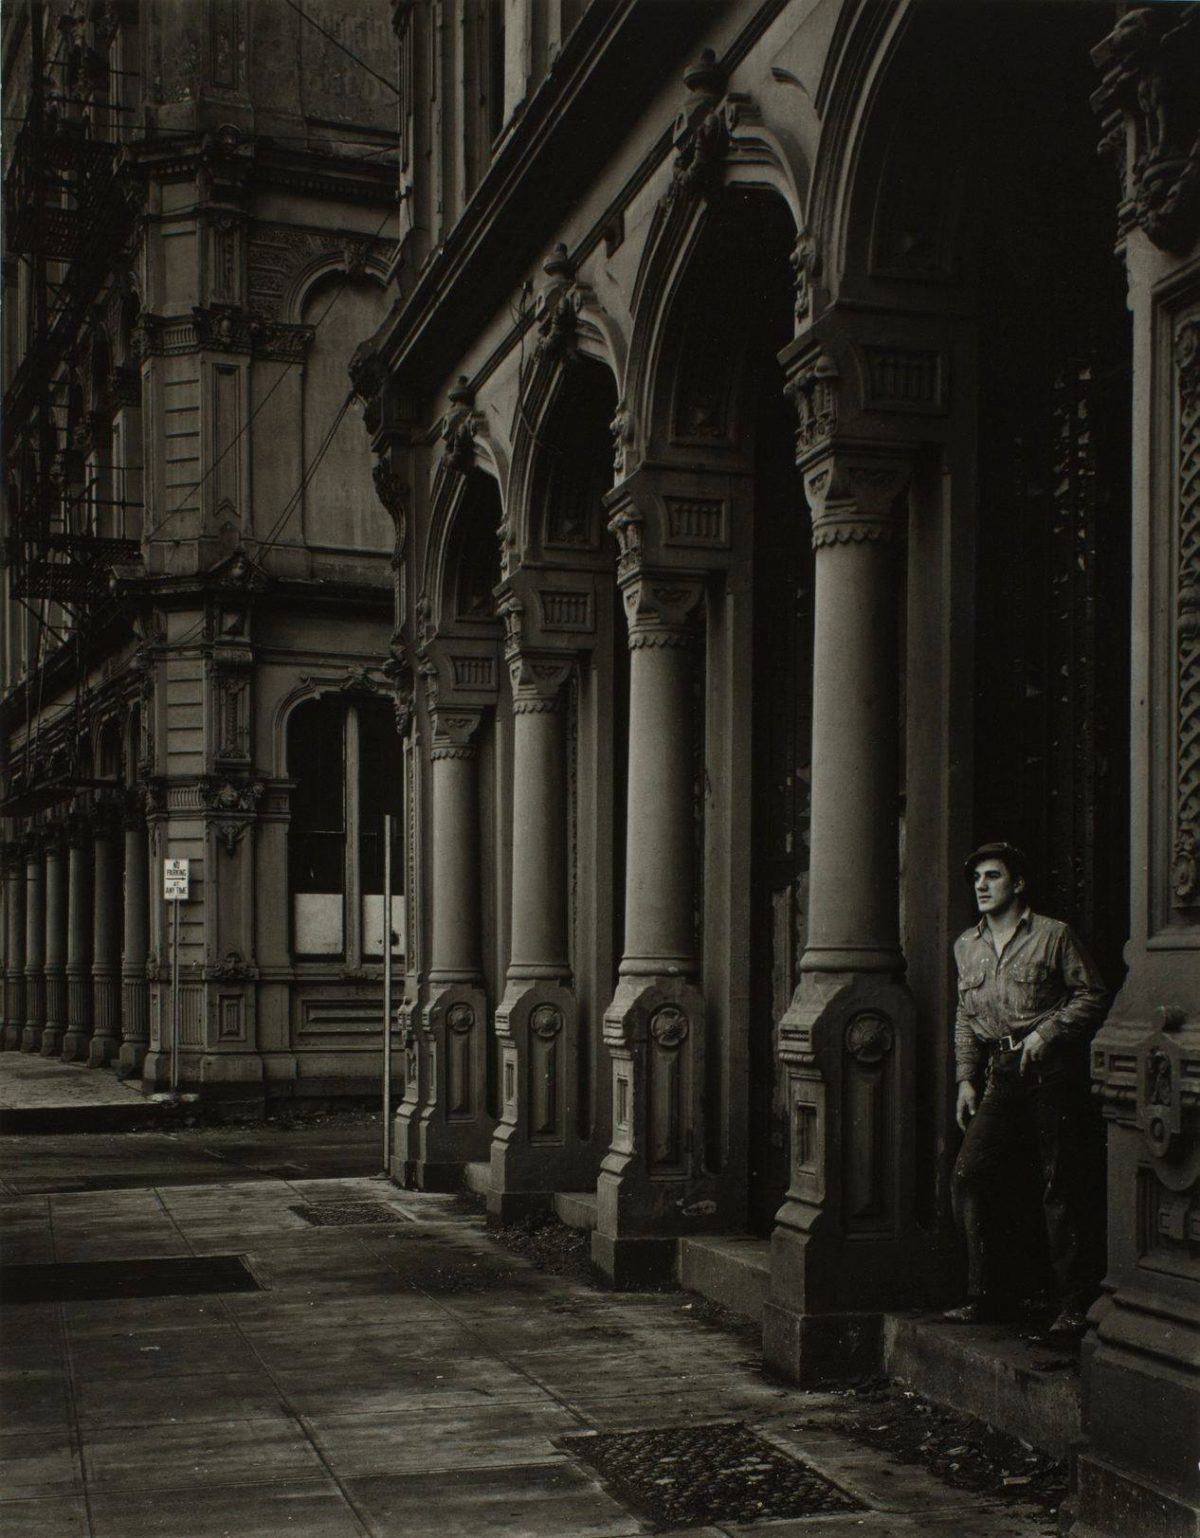 This street scene is a vertically oriented image in a range of gray tones from very light to very dark. A white man stands in the lower right of the image, leaning the right side of his body against one column of an ornate arched, colonnaded building facade while looking over a wide sidewalk at the lower left of the picture. He wears worn belted pants and shirt with a flat cap. The colonnade and sidewalk recede at a strong angle into the middle distance, ending at a side street running horizontally through the lower center left. A second building, on the far side of the cross street, fills the center left and upper left of the picture with more ornate building detail, fire escapes, and telephone wires.